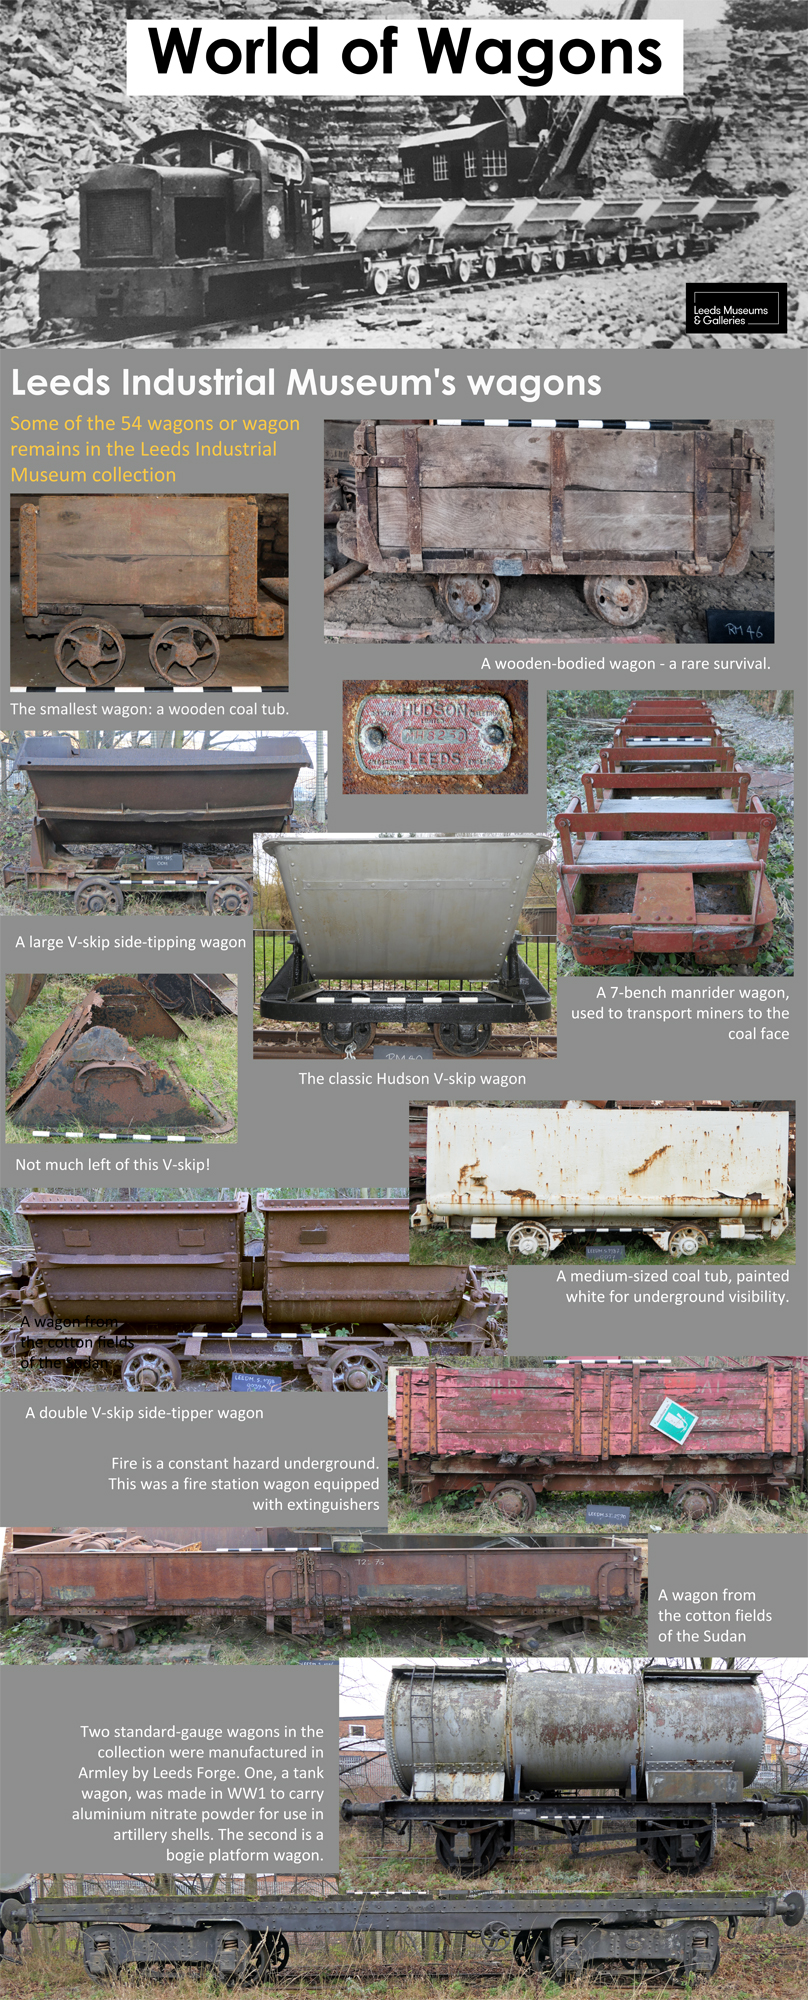 World of wagons display panel 3